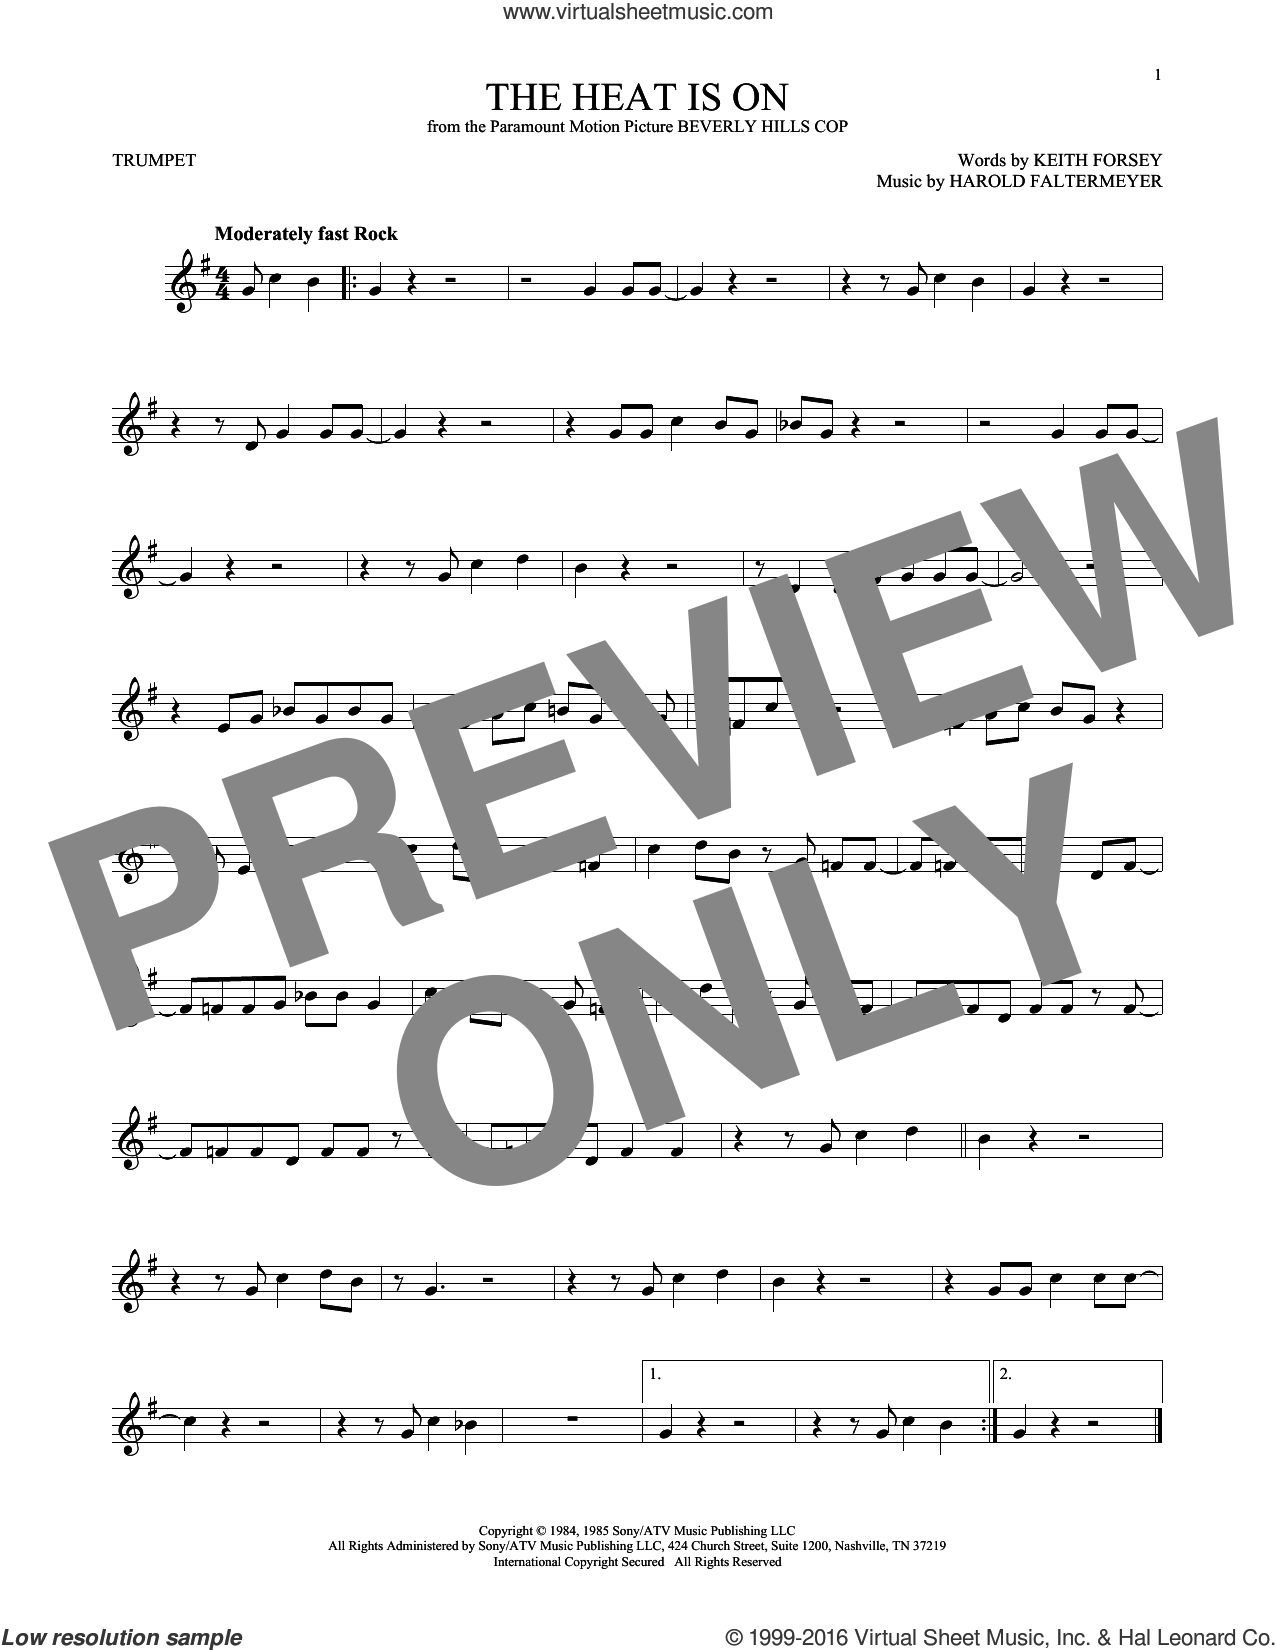 The Heat Is On sheet music for trumpet solo by Keith Forsey